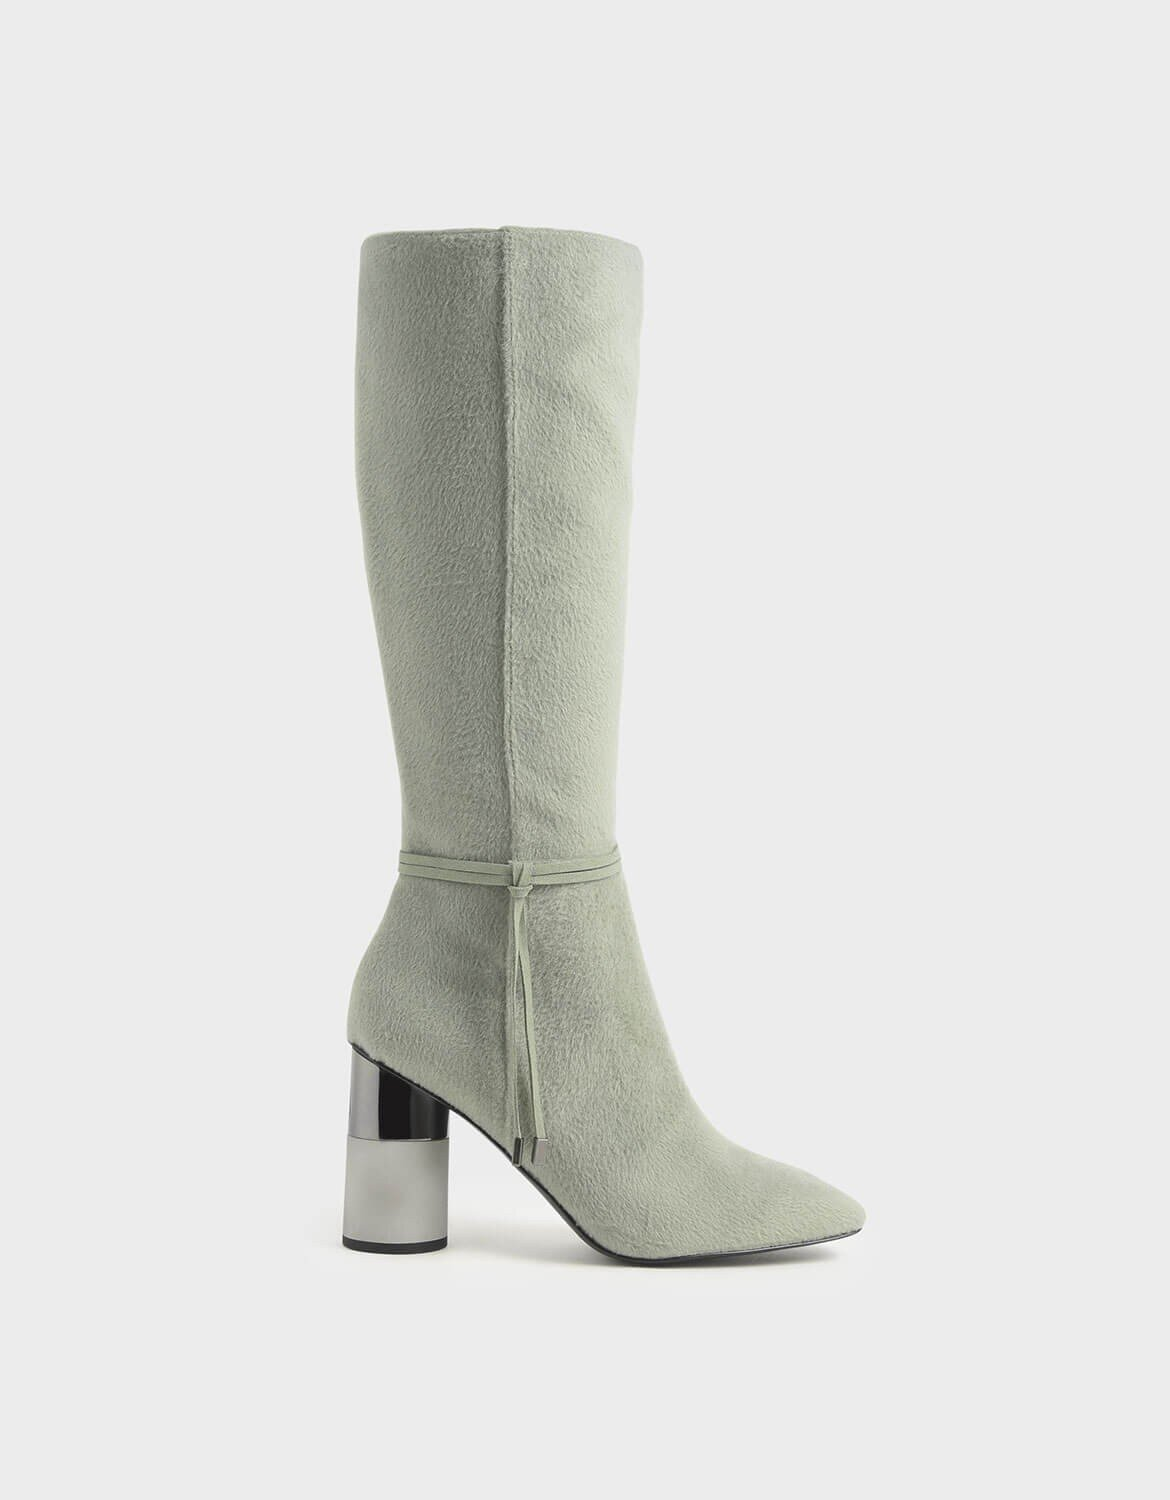 Calf Length boot… - This boot is by Charles Keith. I included a photo below from their instagram which shows a super cute way to wear these boots. If I buy these i'd def pair them with a green dress too.